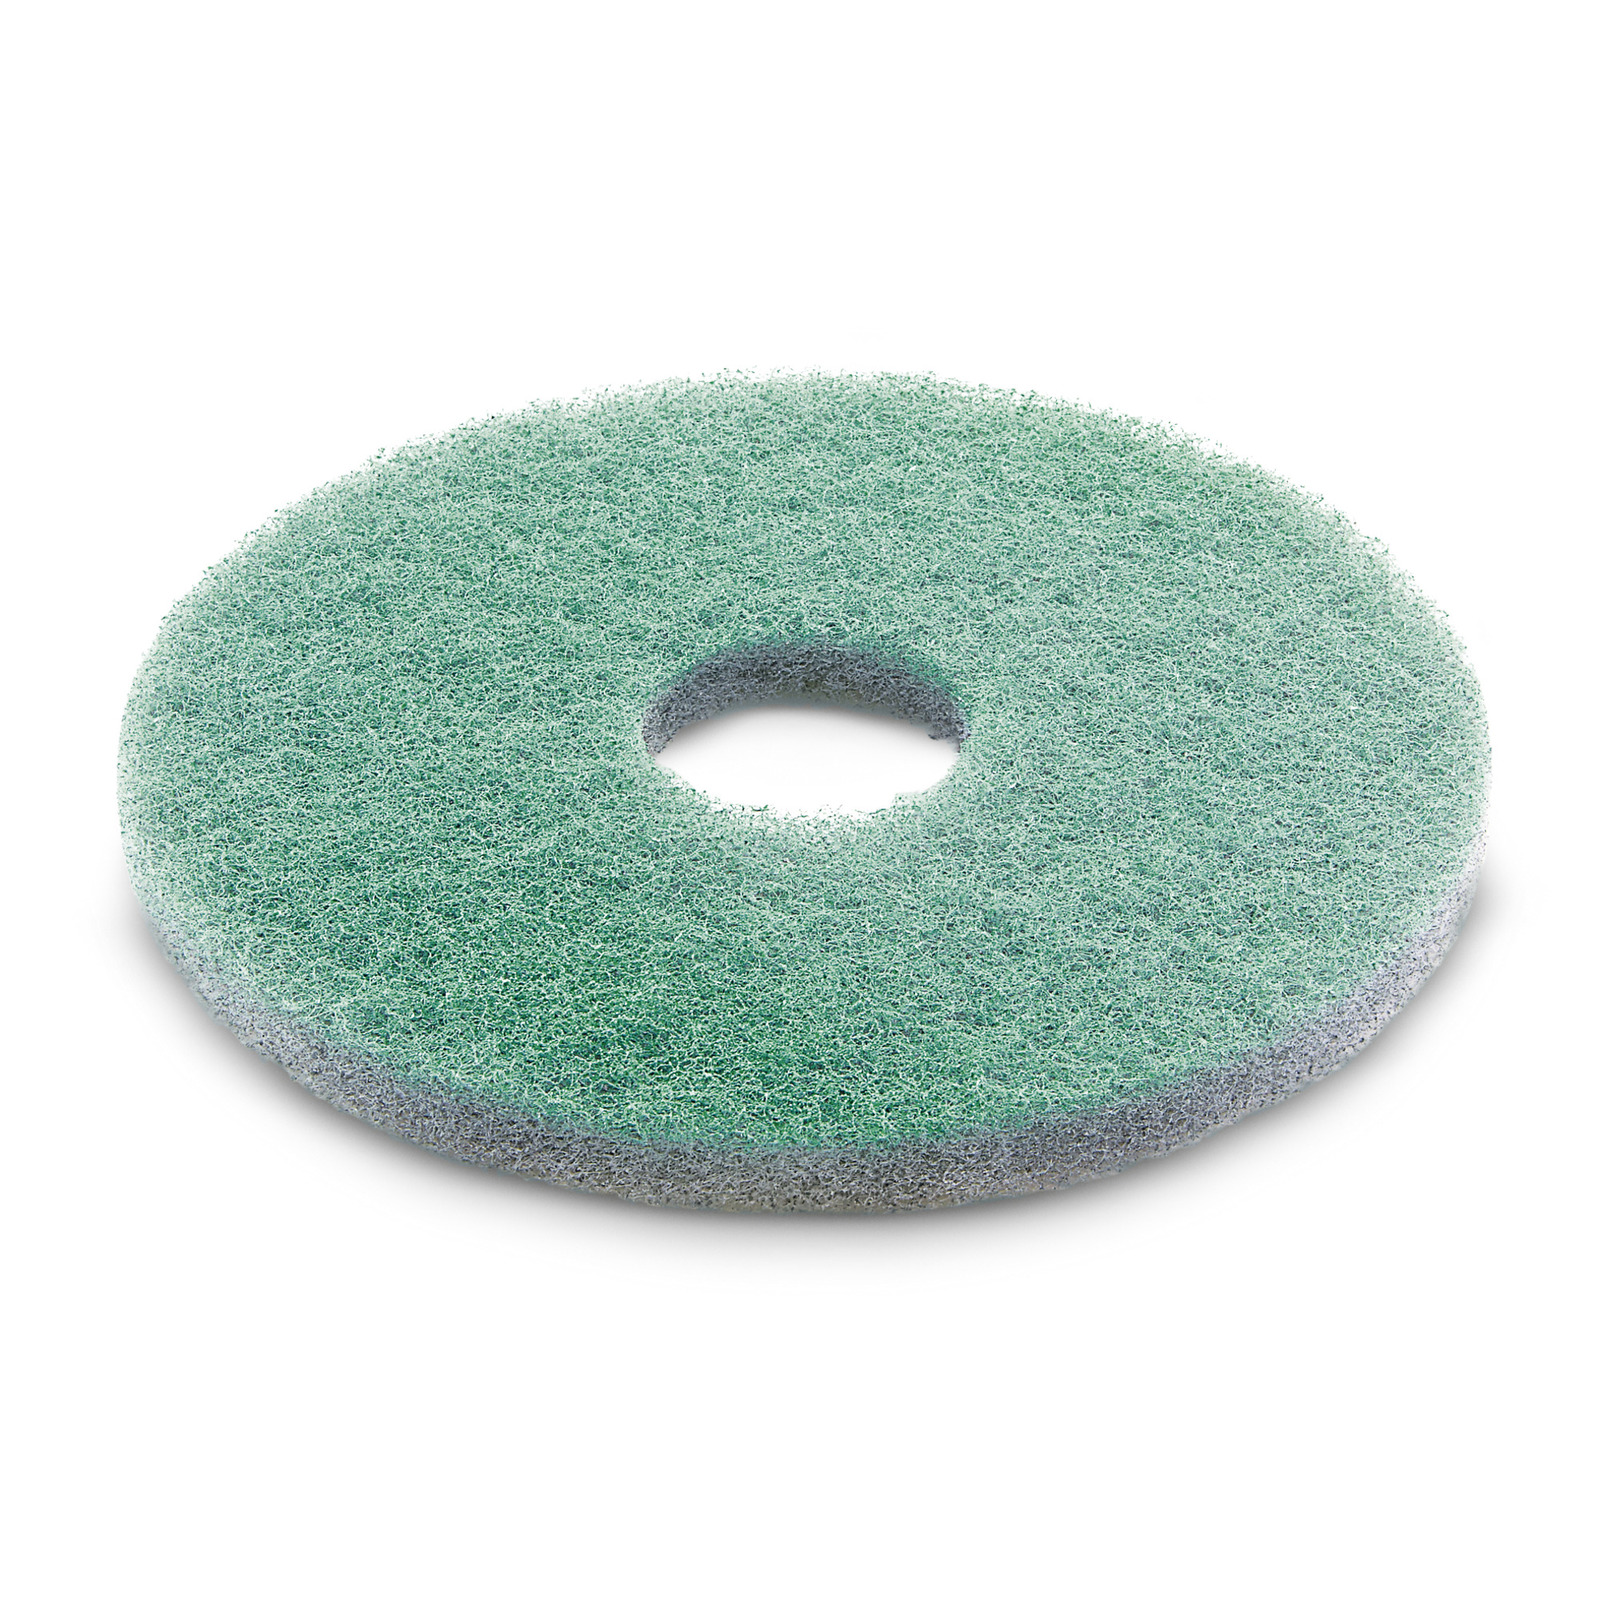 Kärcher  Diamond pad, fine, green, 152 mm